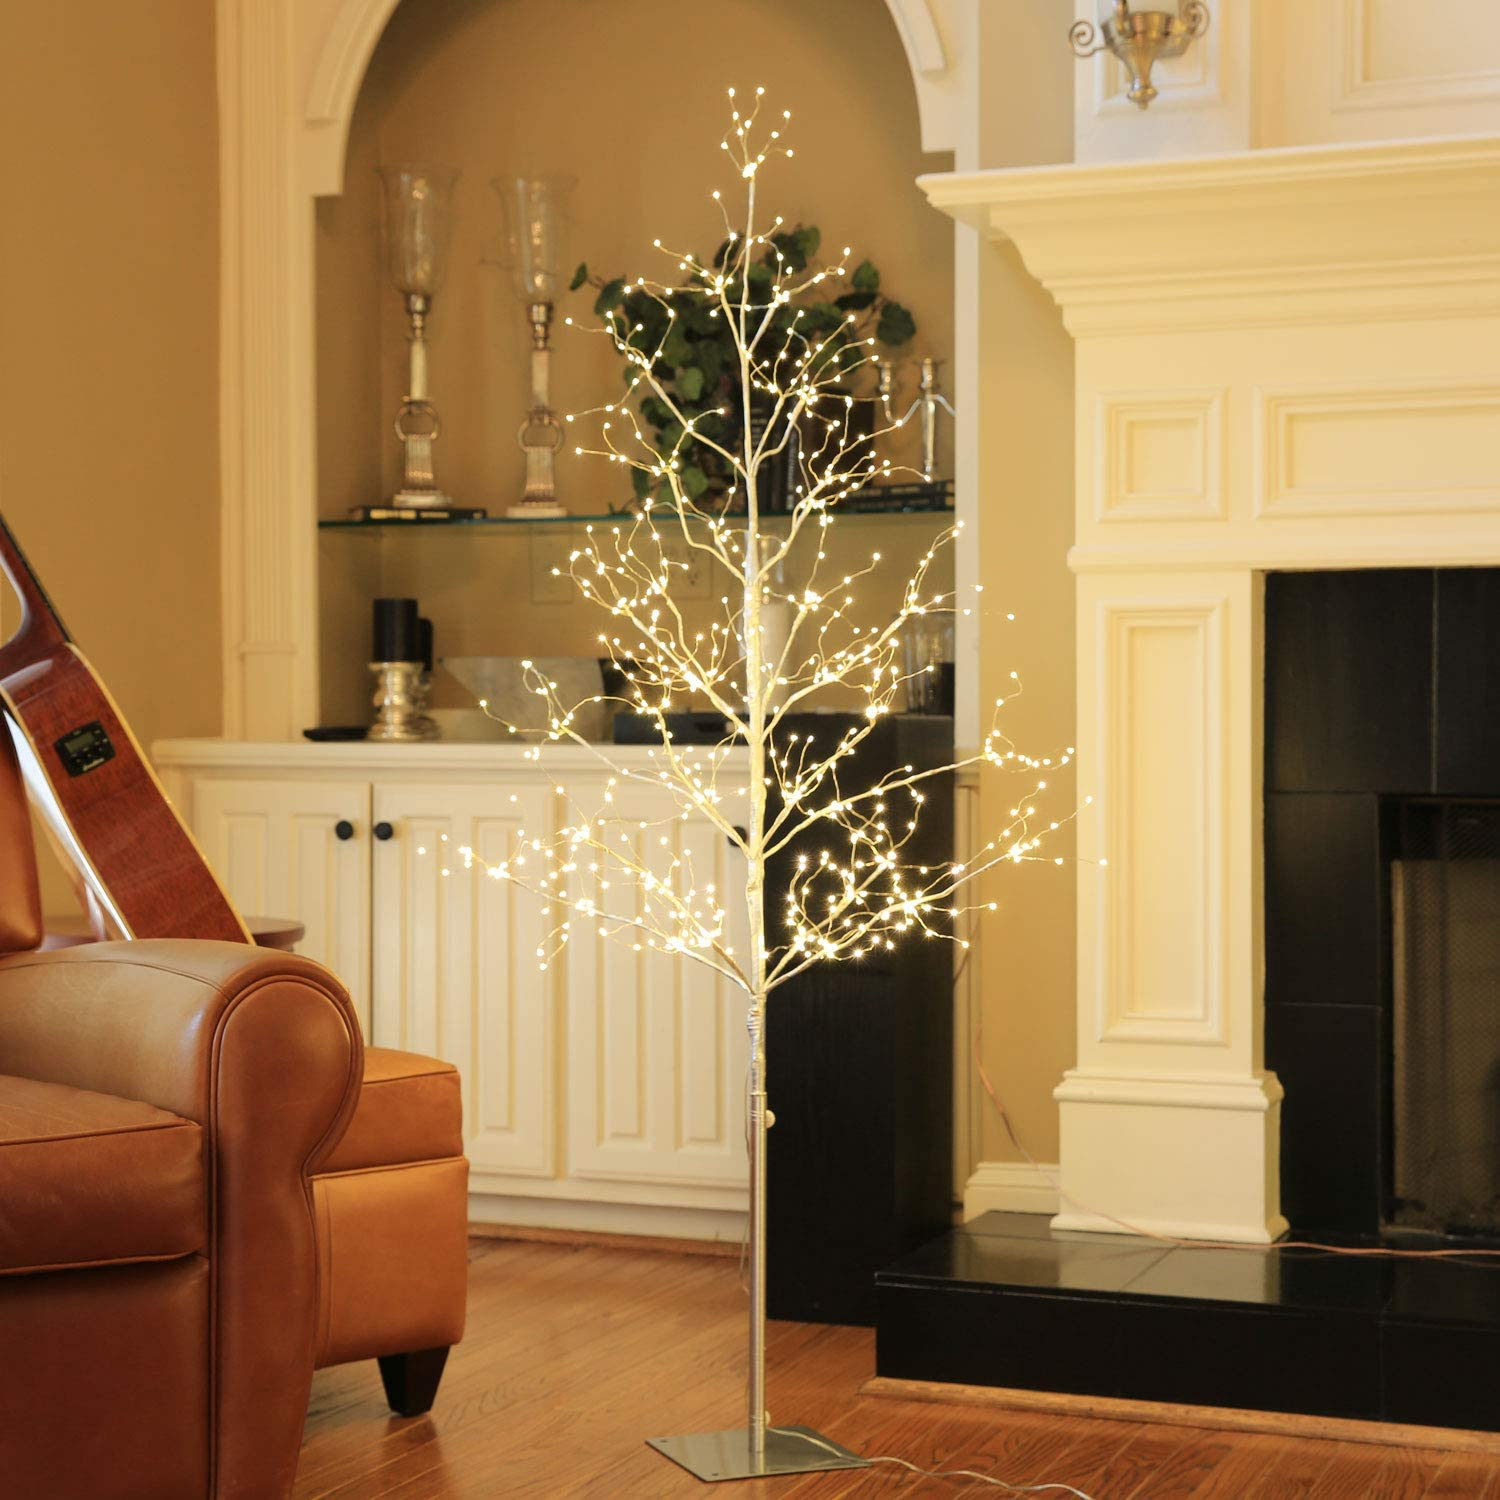 LIGHTSHARE 5 ft. LED Tree - Starlit Tree Collection with Warm White LED Angel Lights, 5 Feet, Silver, Perfect for Home Décor Holiday Party Wedding